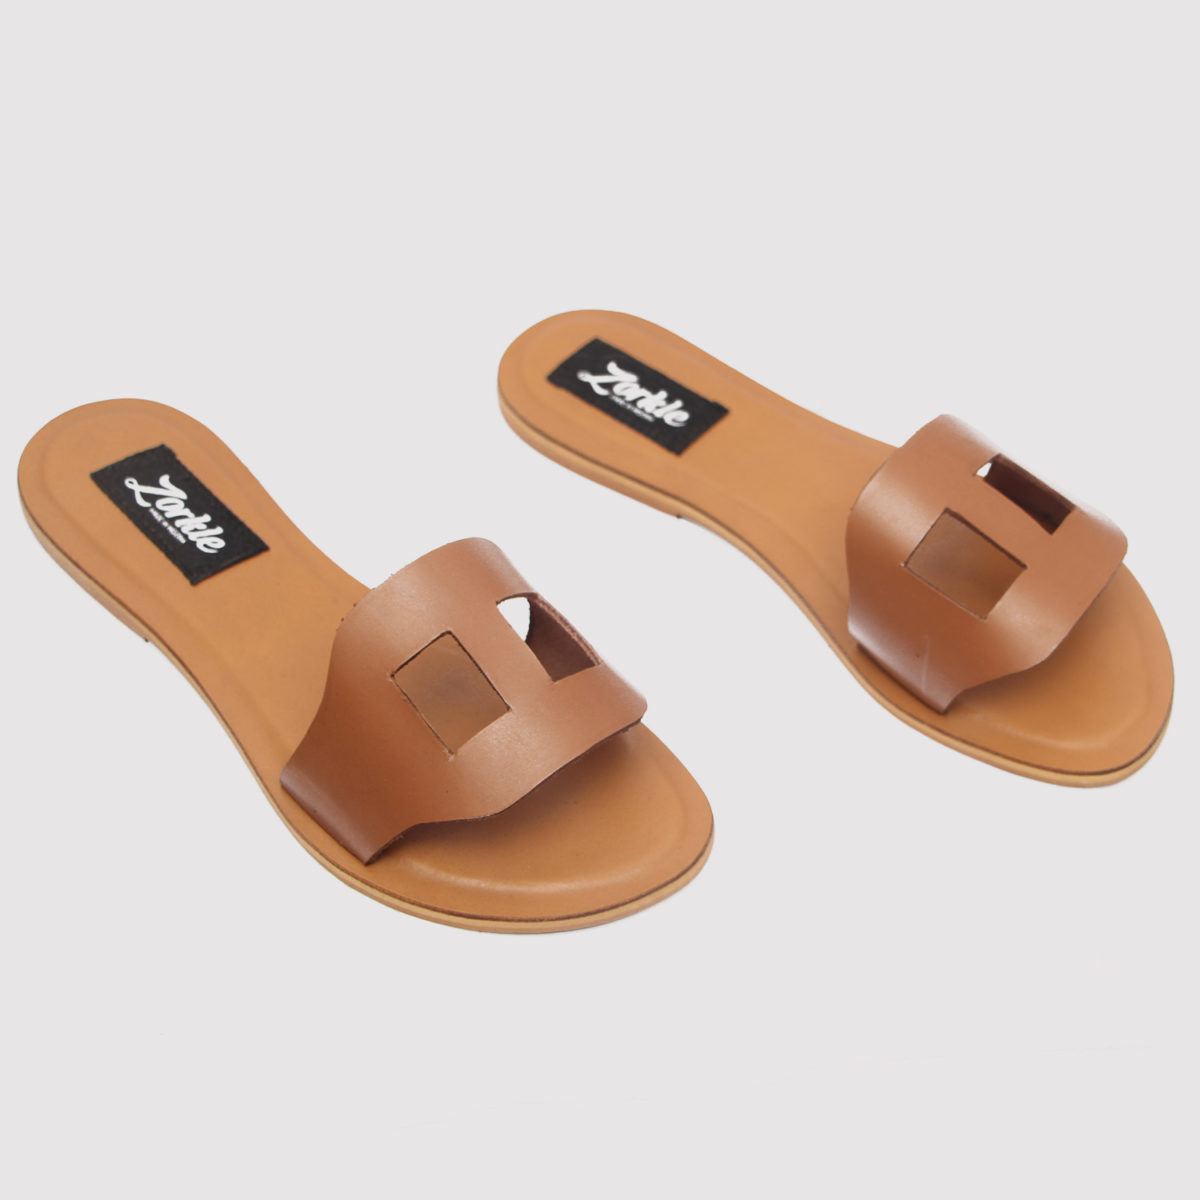 Tofs slippers brown leather zorkle shoes in lagos nigeria